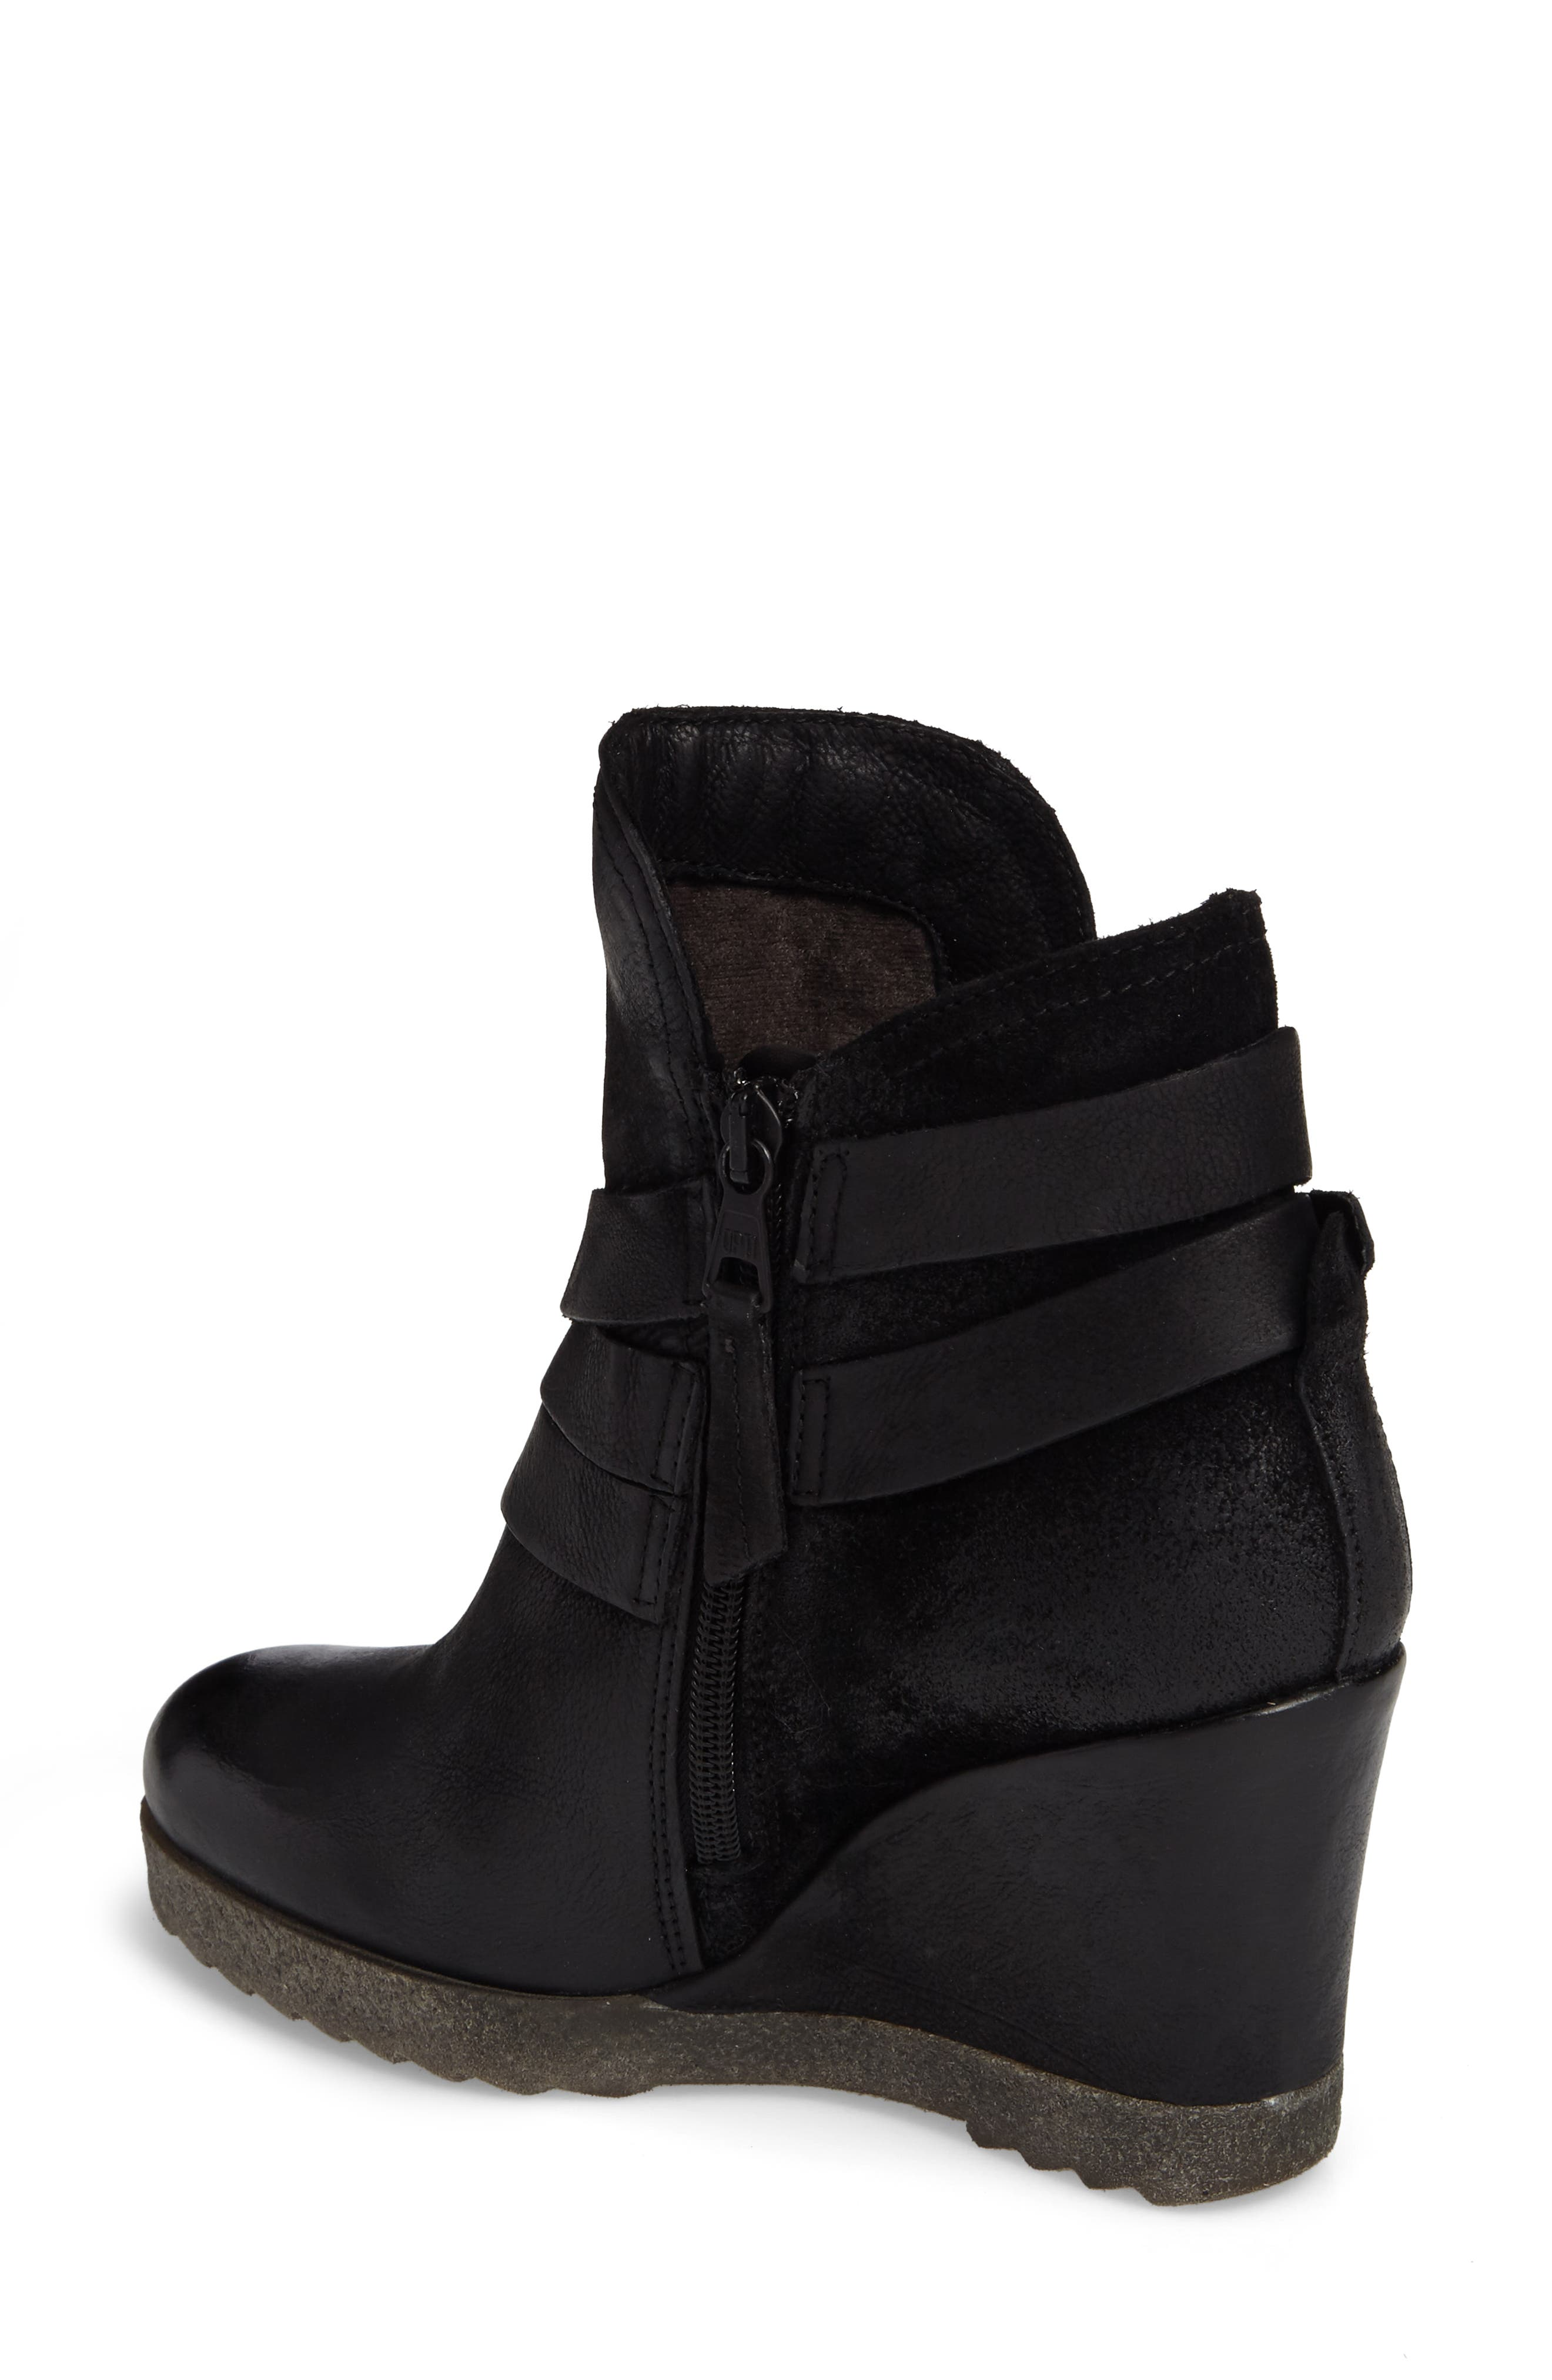 Narcissa Ankle Wrap Wedge Bootie,                             Alternate thumbnail 2, color,                             001